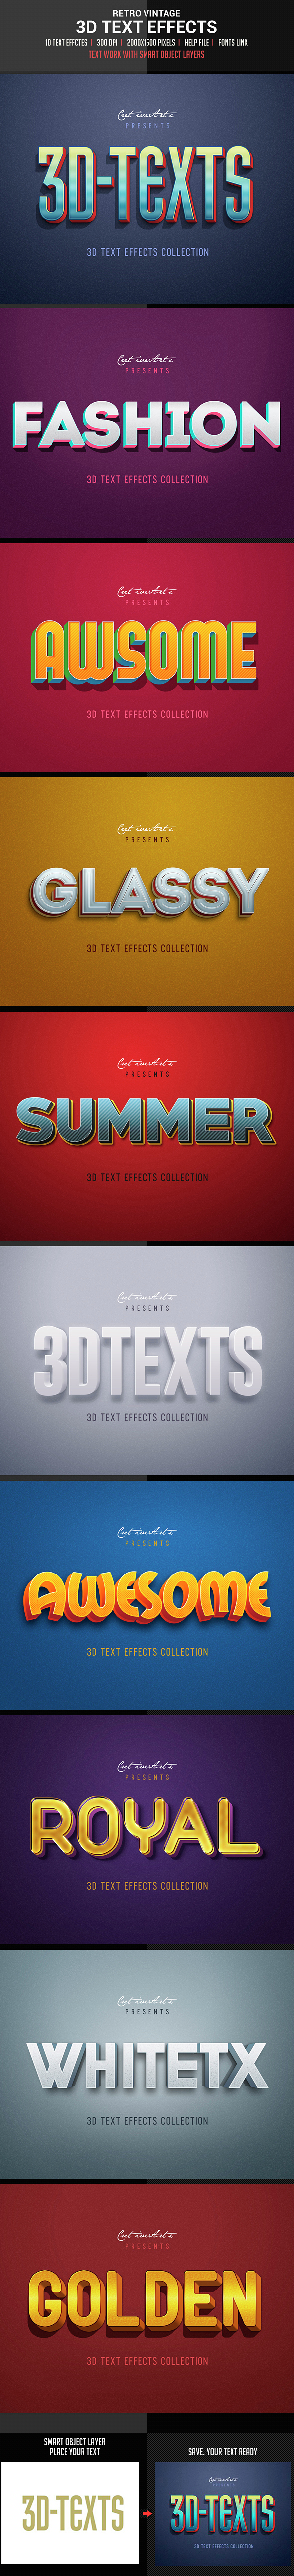 Retro Vintage 3D Text Effects - Text Effects Actions